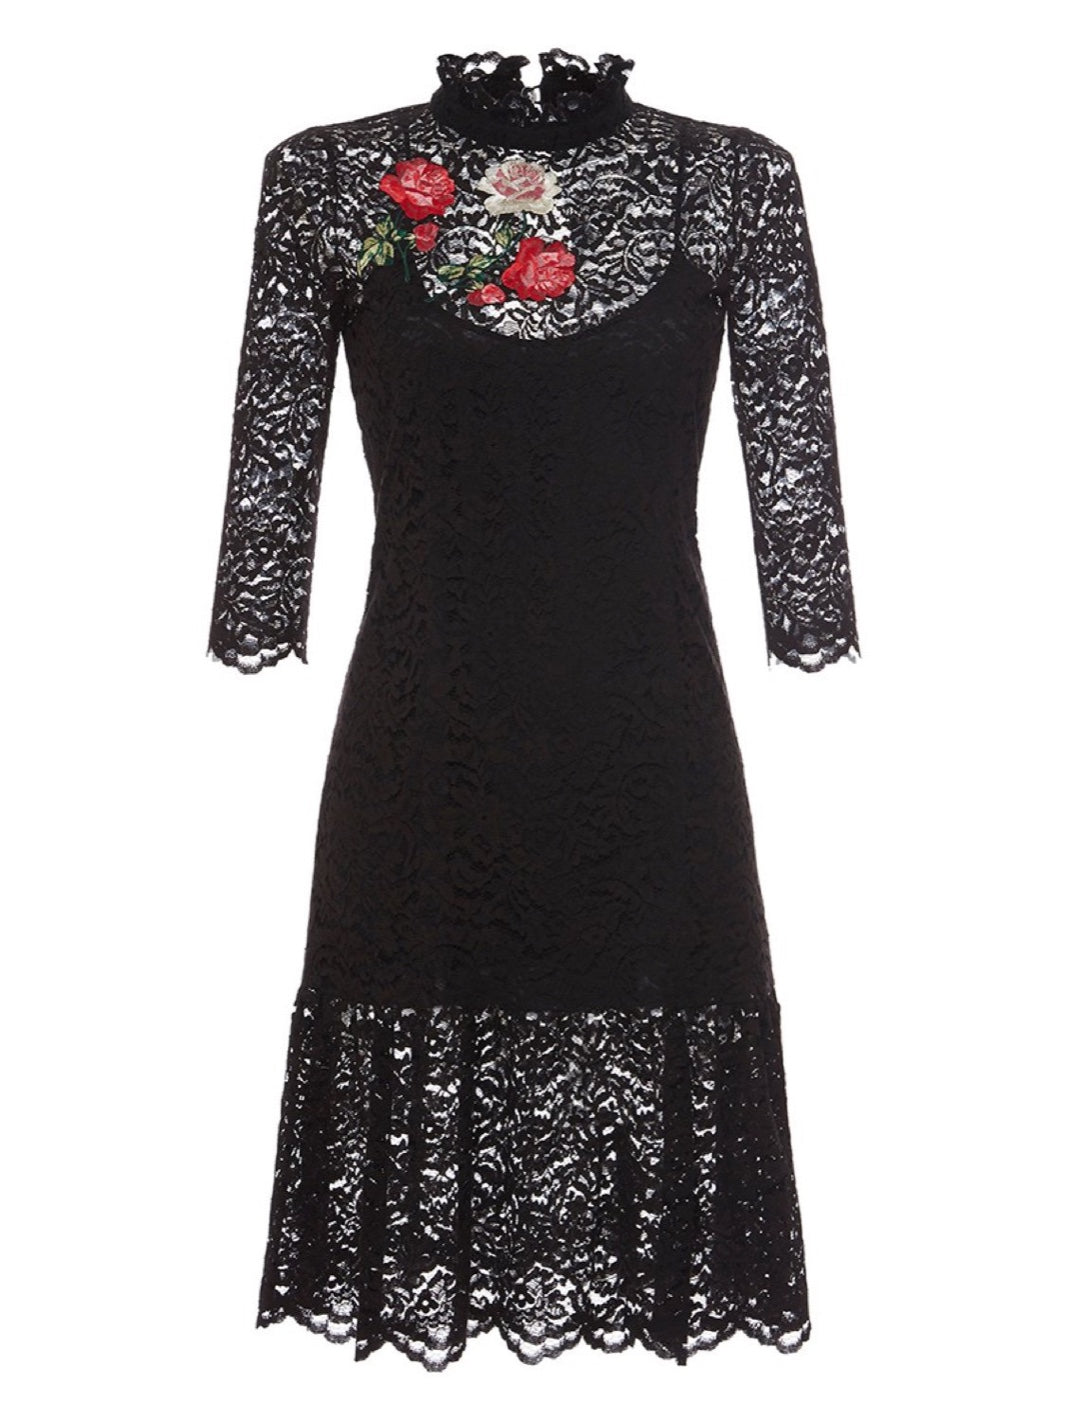 Embroidered Lace Dress - The Bobby Boga